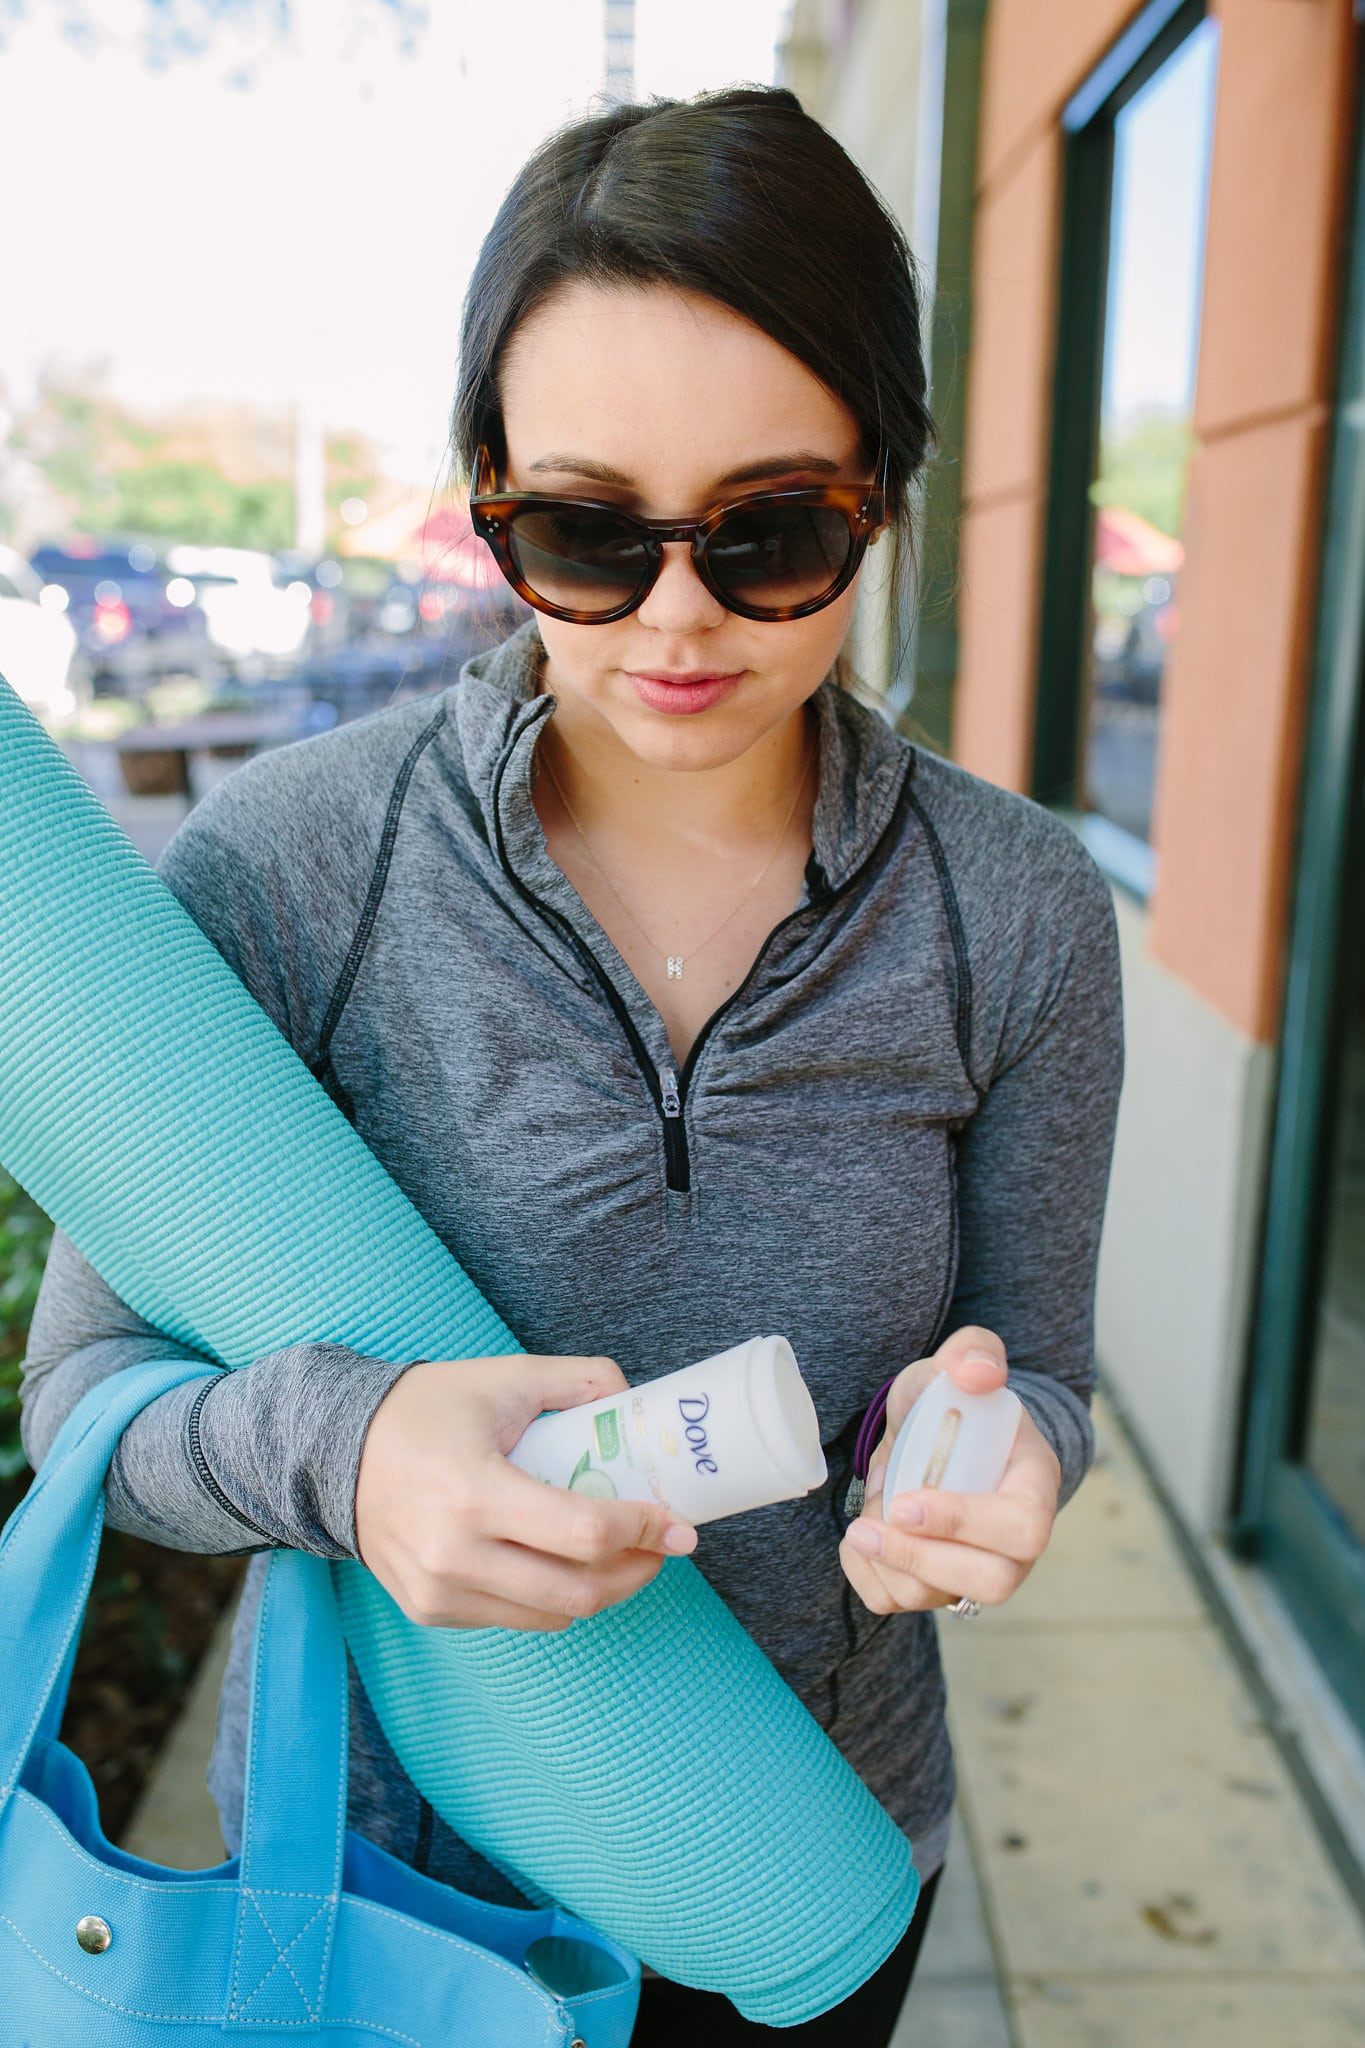 The best deodorant for on-the-go gals